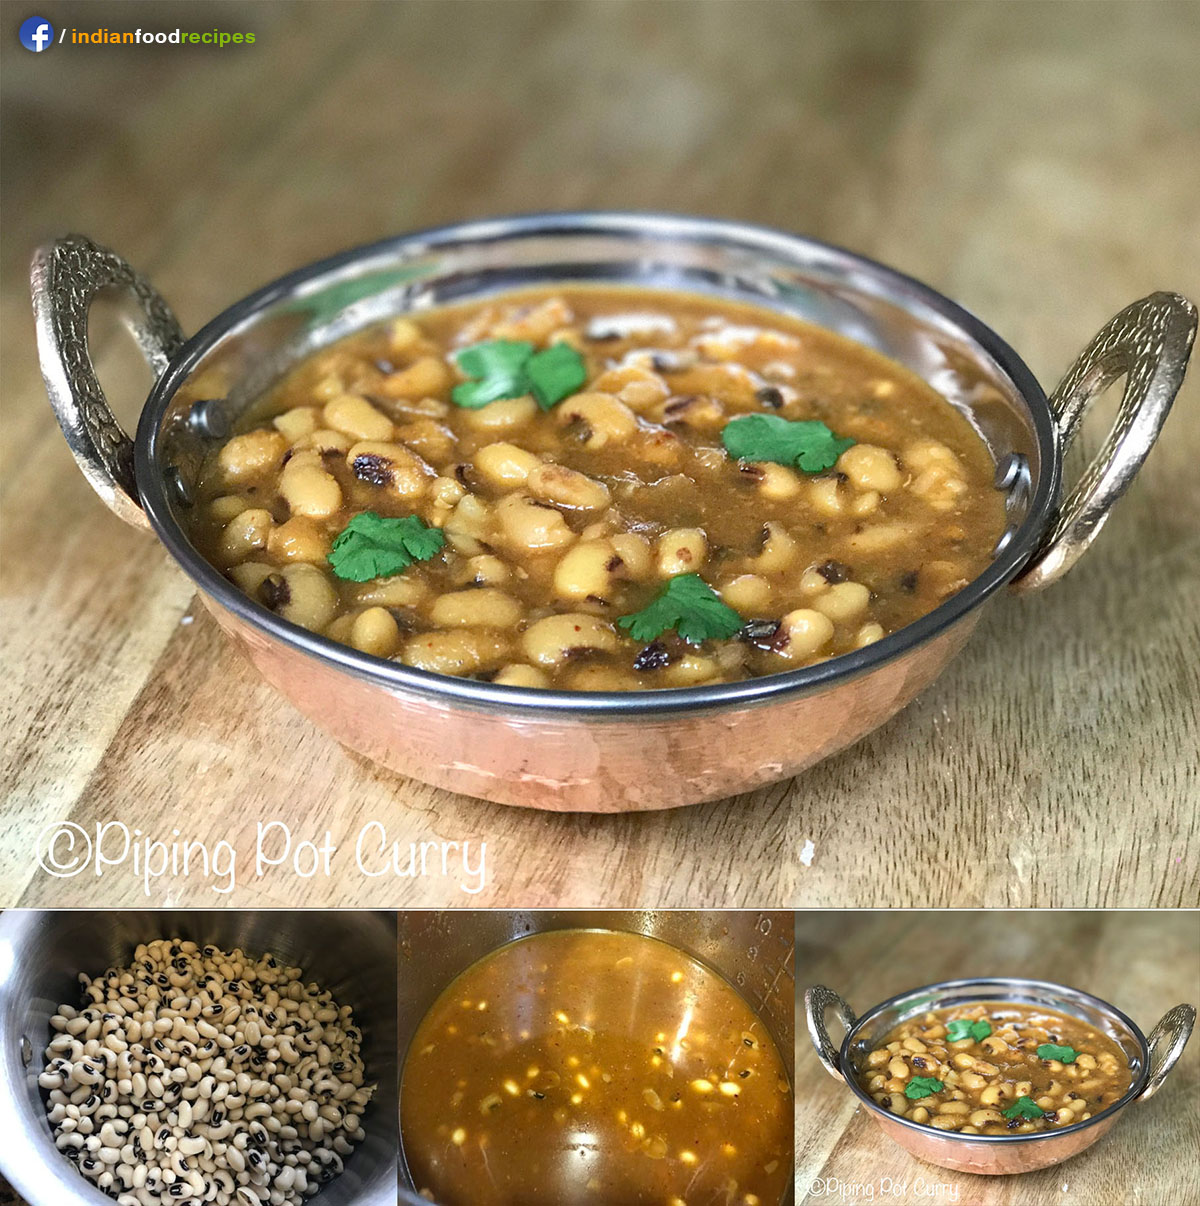 Instant Pot Black Eyed Peas Curry (Lobia) recipe step by step